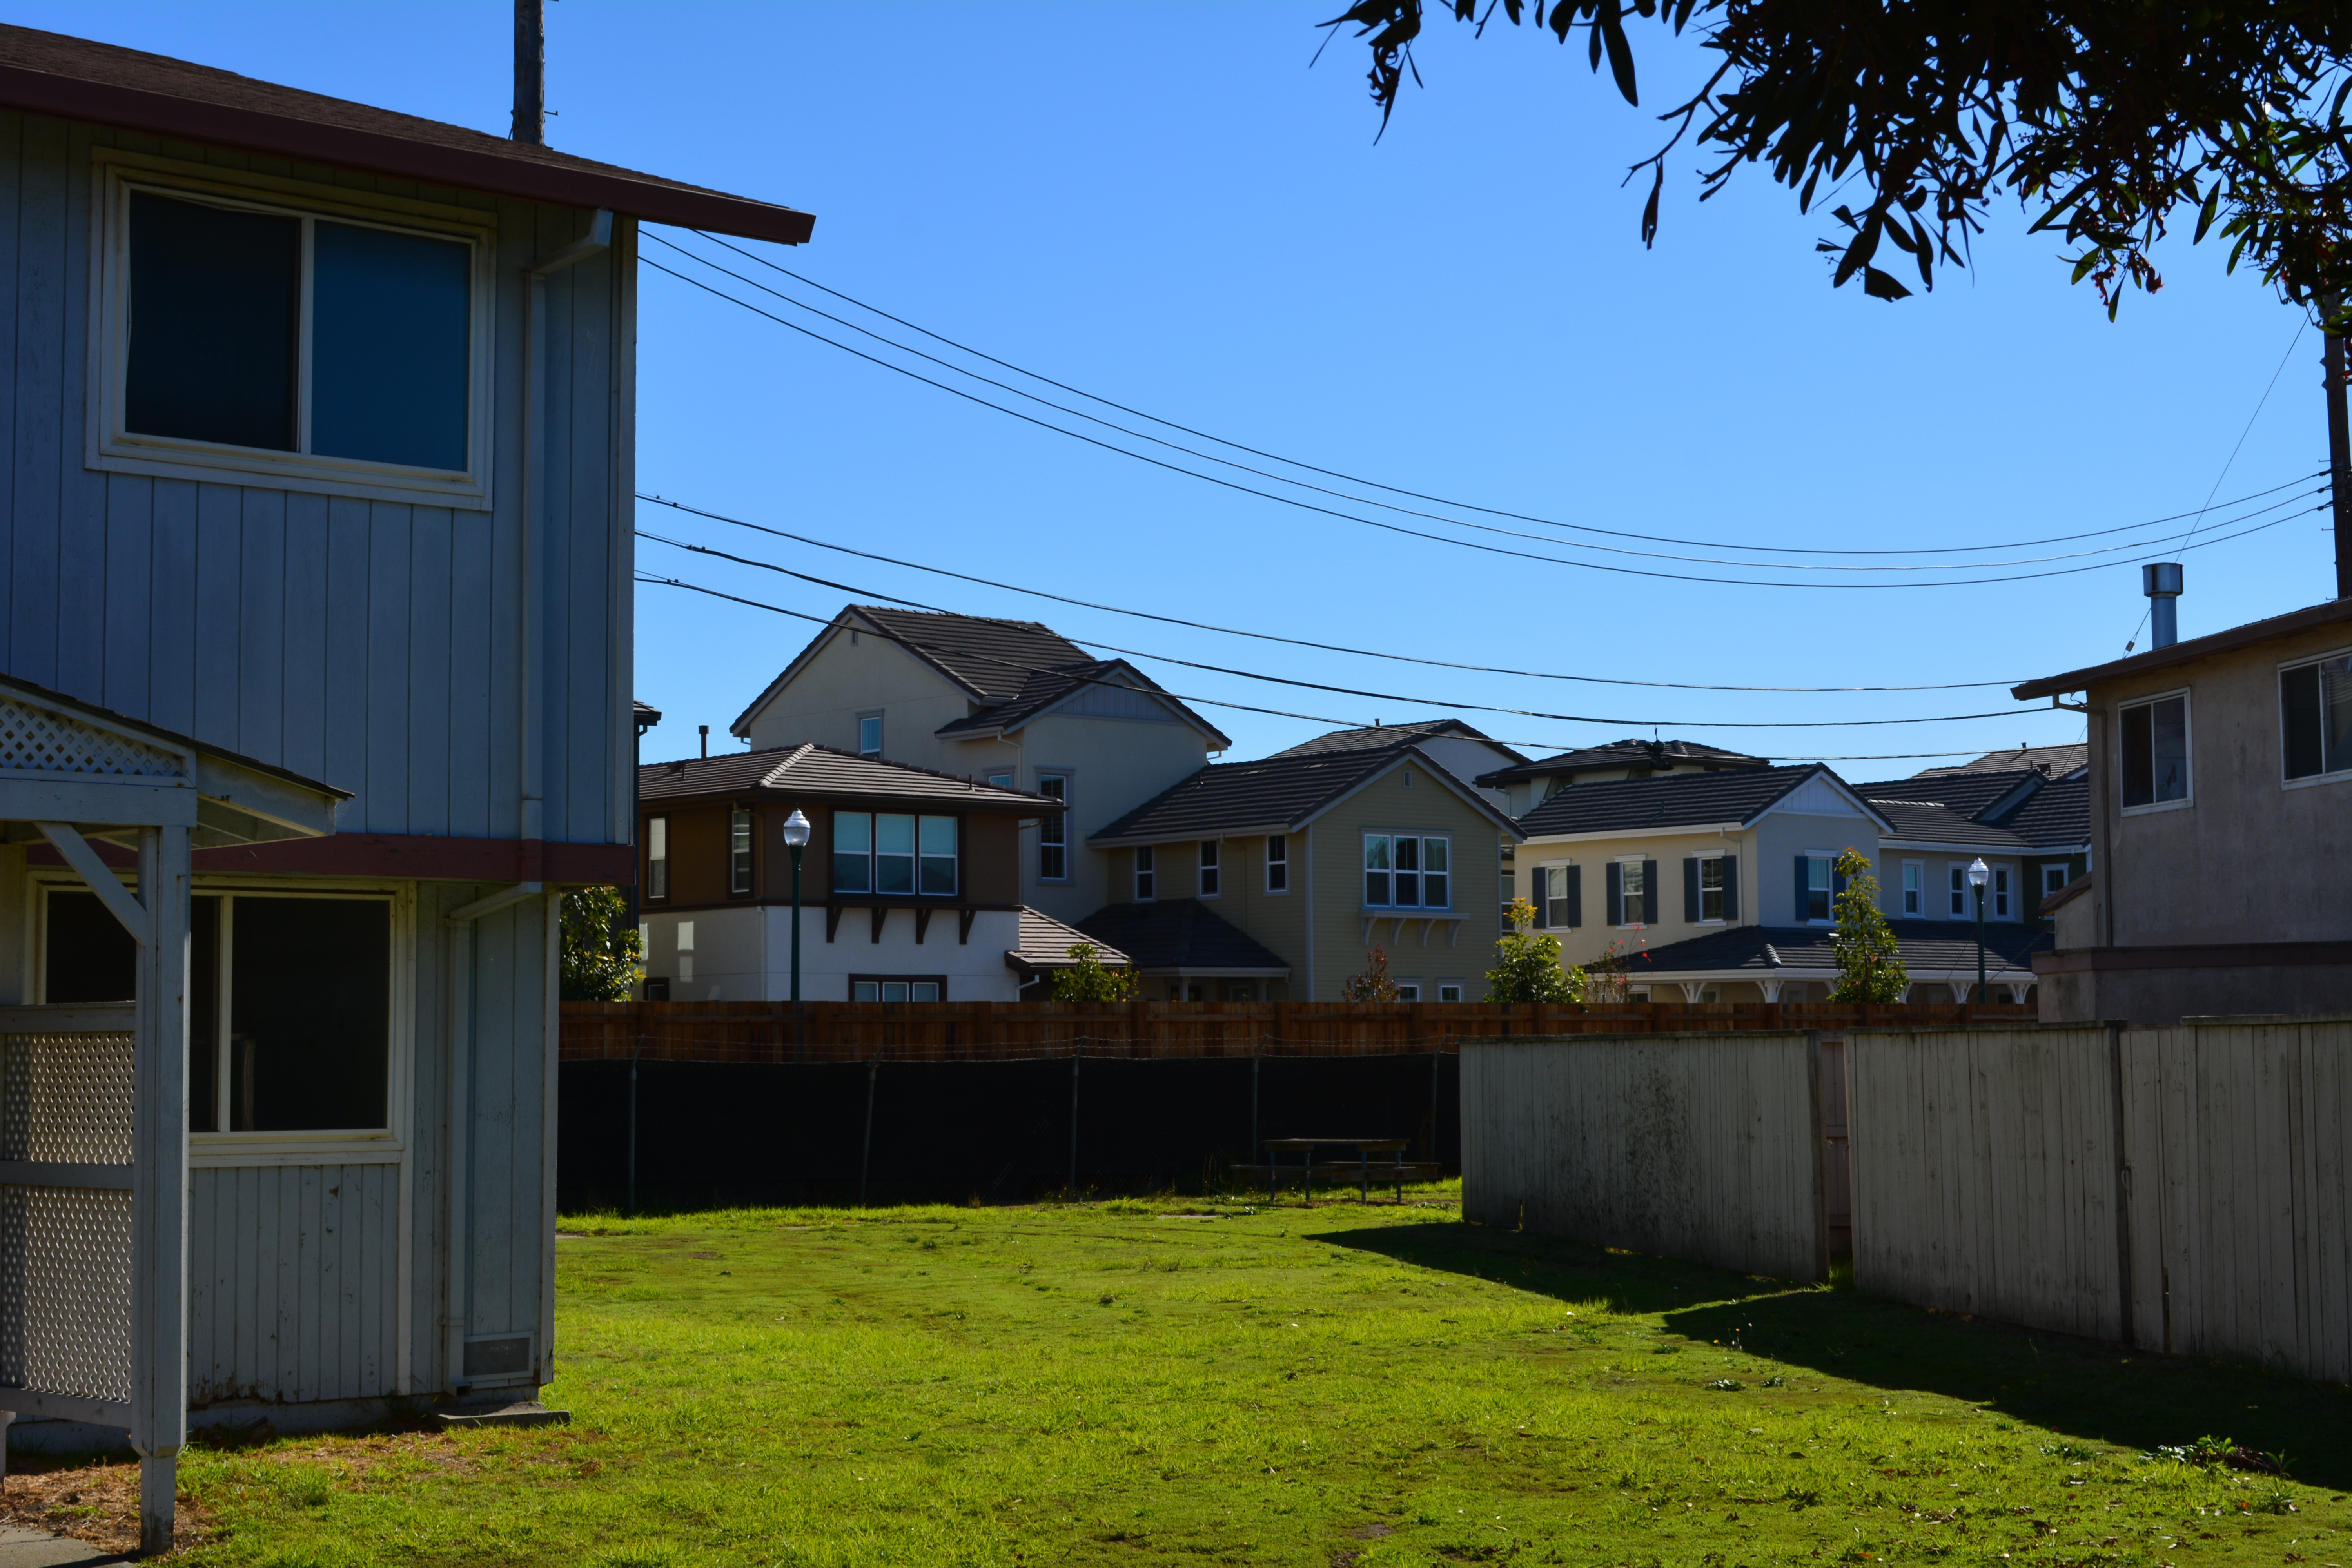 Future Housing Authority property, with new Alameda Landing houses in the background.